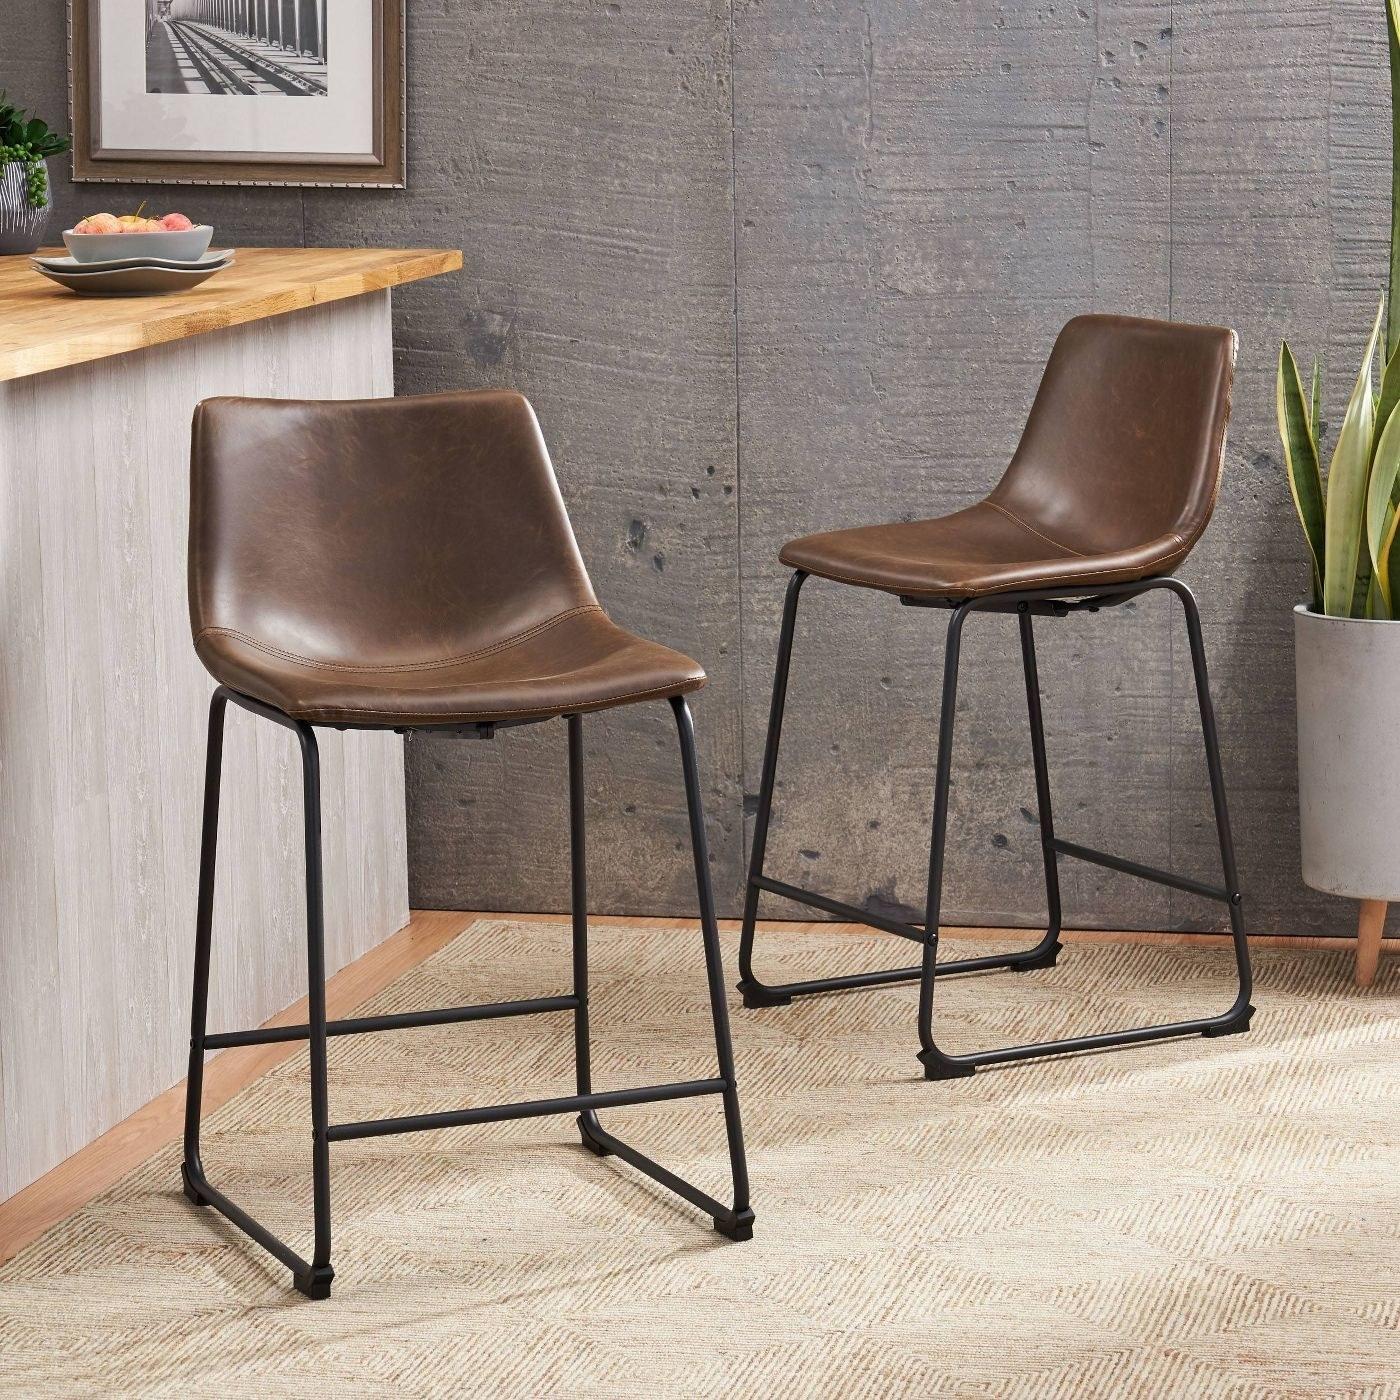 Two brown faux leather bar stools with black metal bases